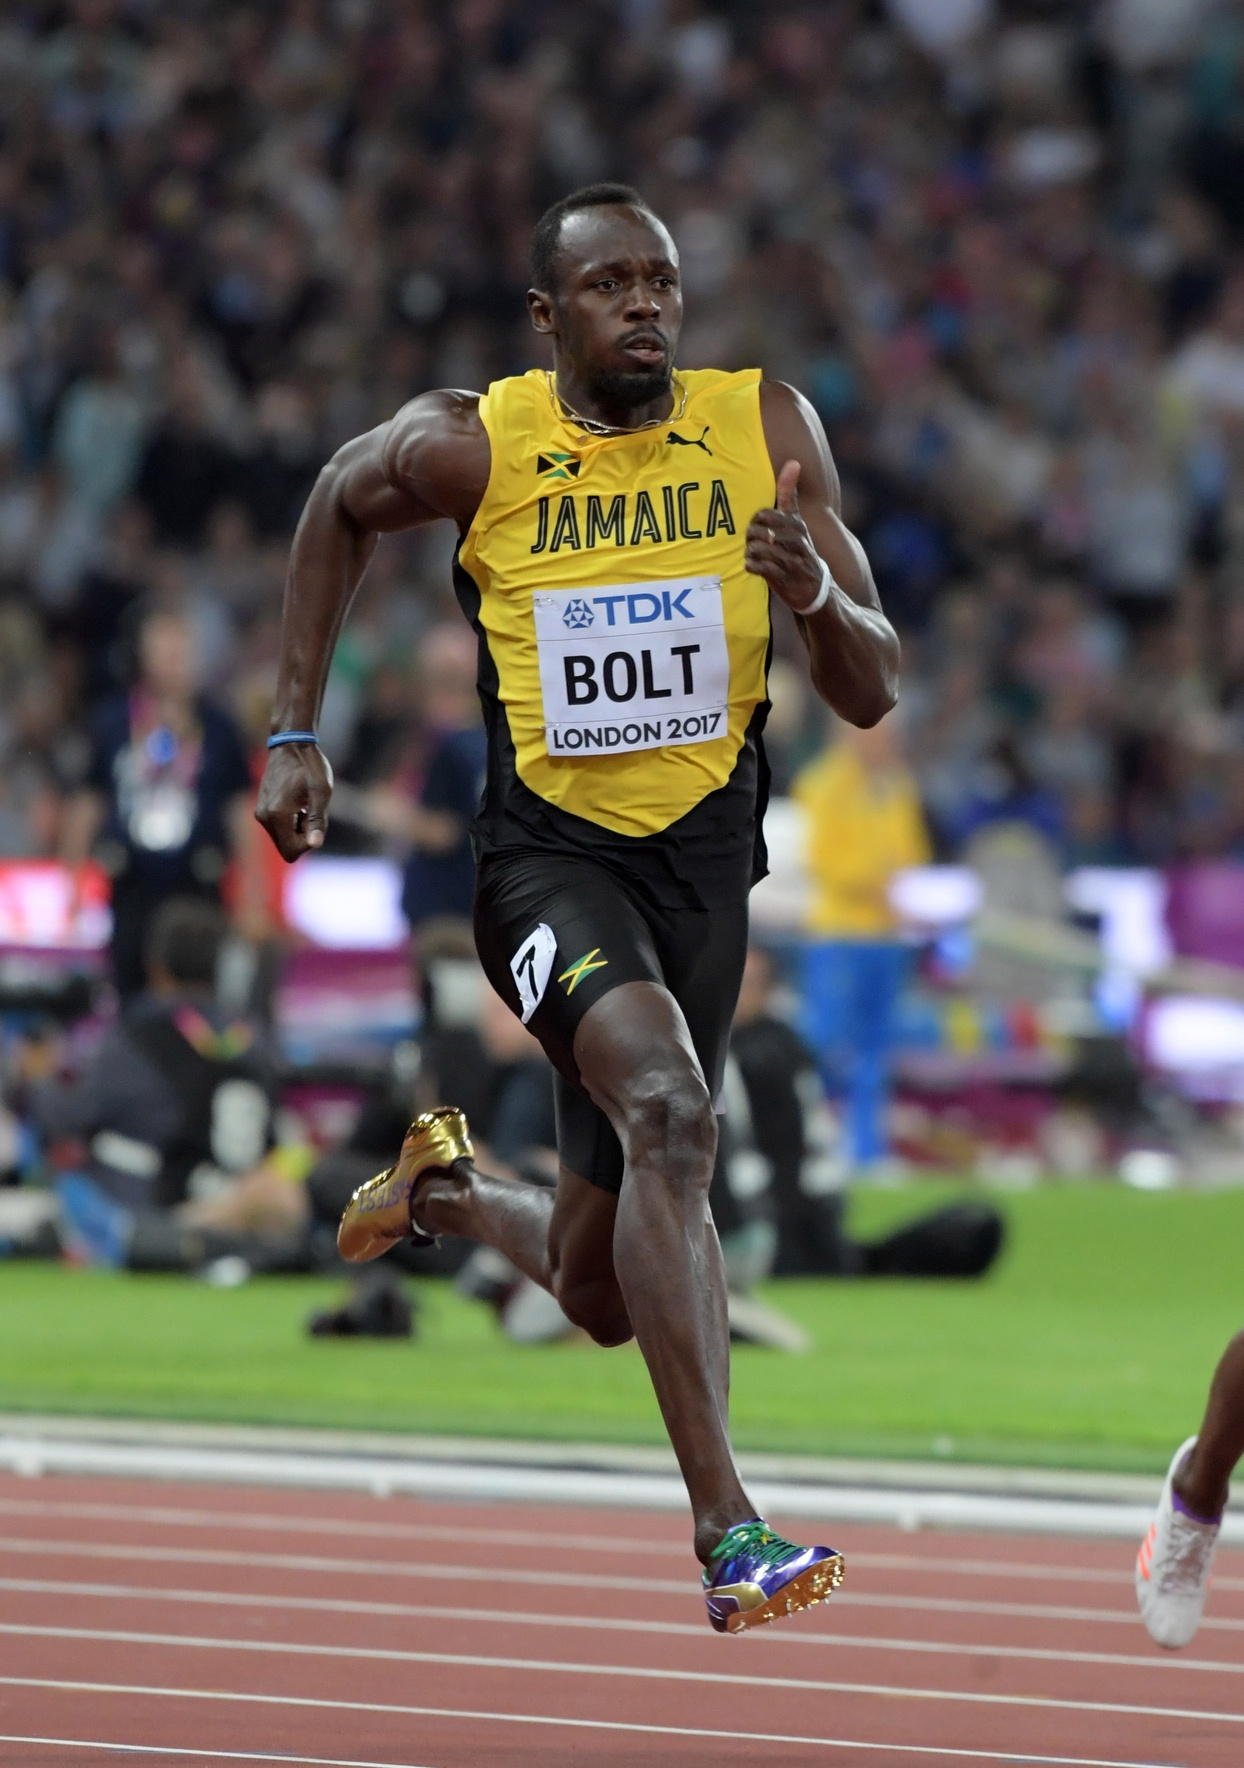 Usain bolt like phelps a legend with an imperfect ending - Usain bolt running hd photos ...